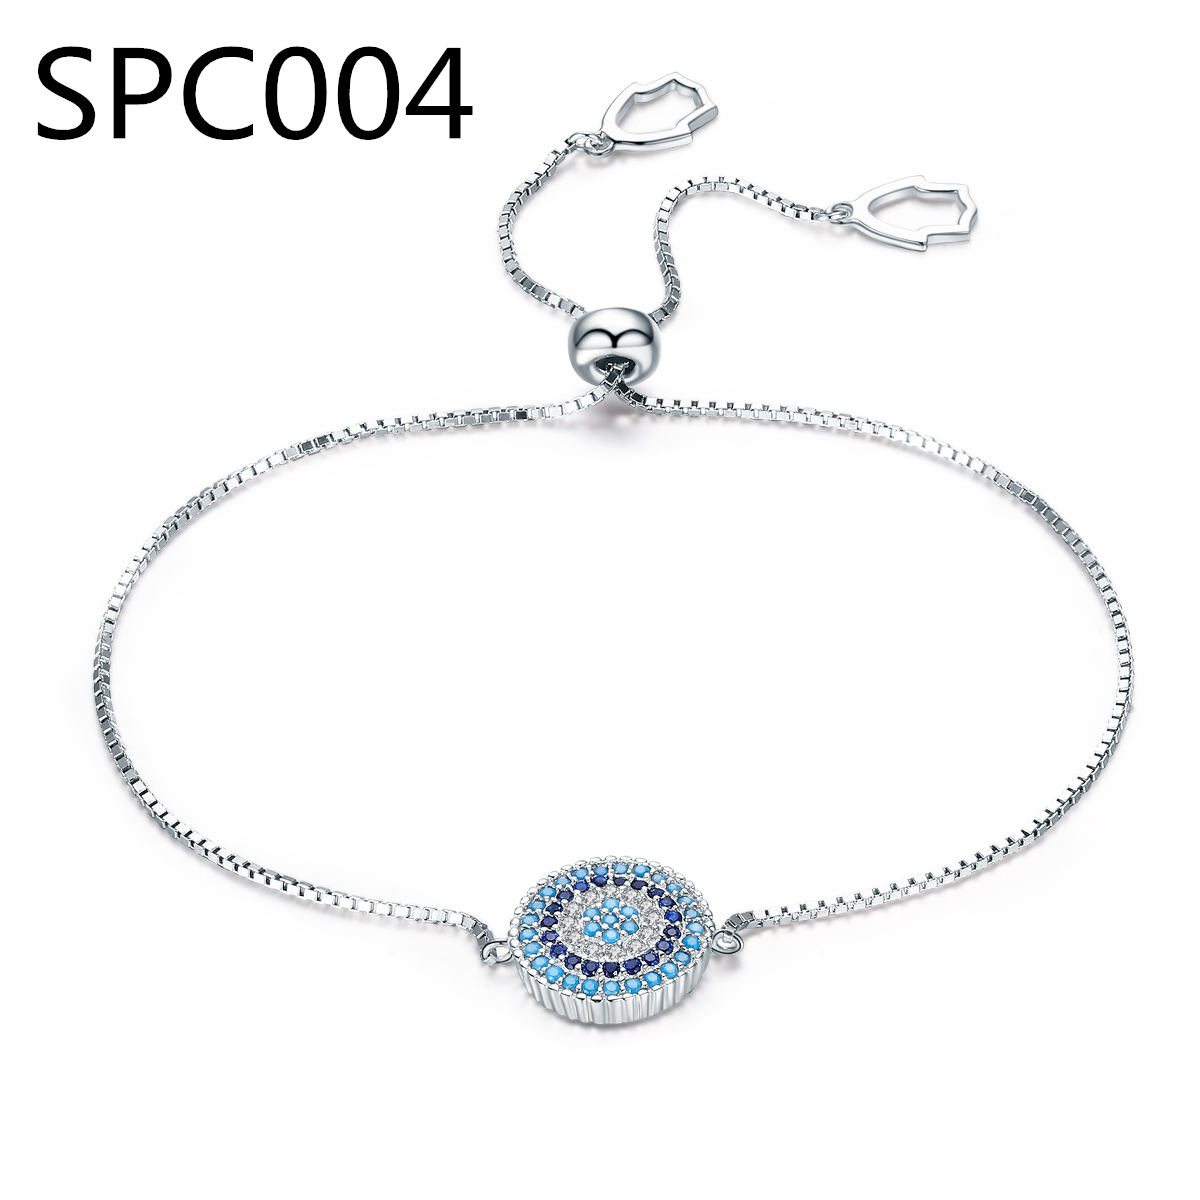 (With Box) SPC1 New Silver Metal Women Bracelet Vintage I love my cat person cat friend paw Charms Accessory DZ image